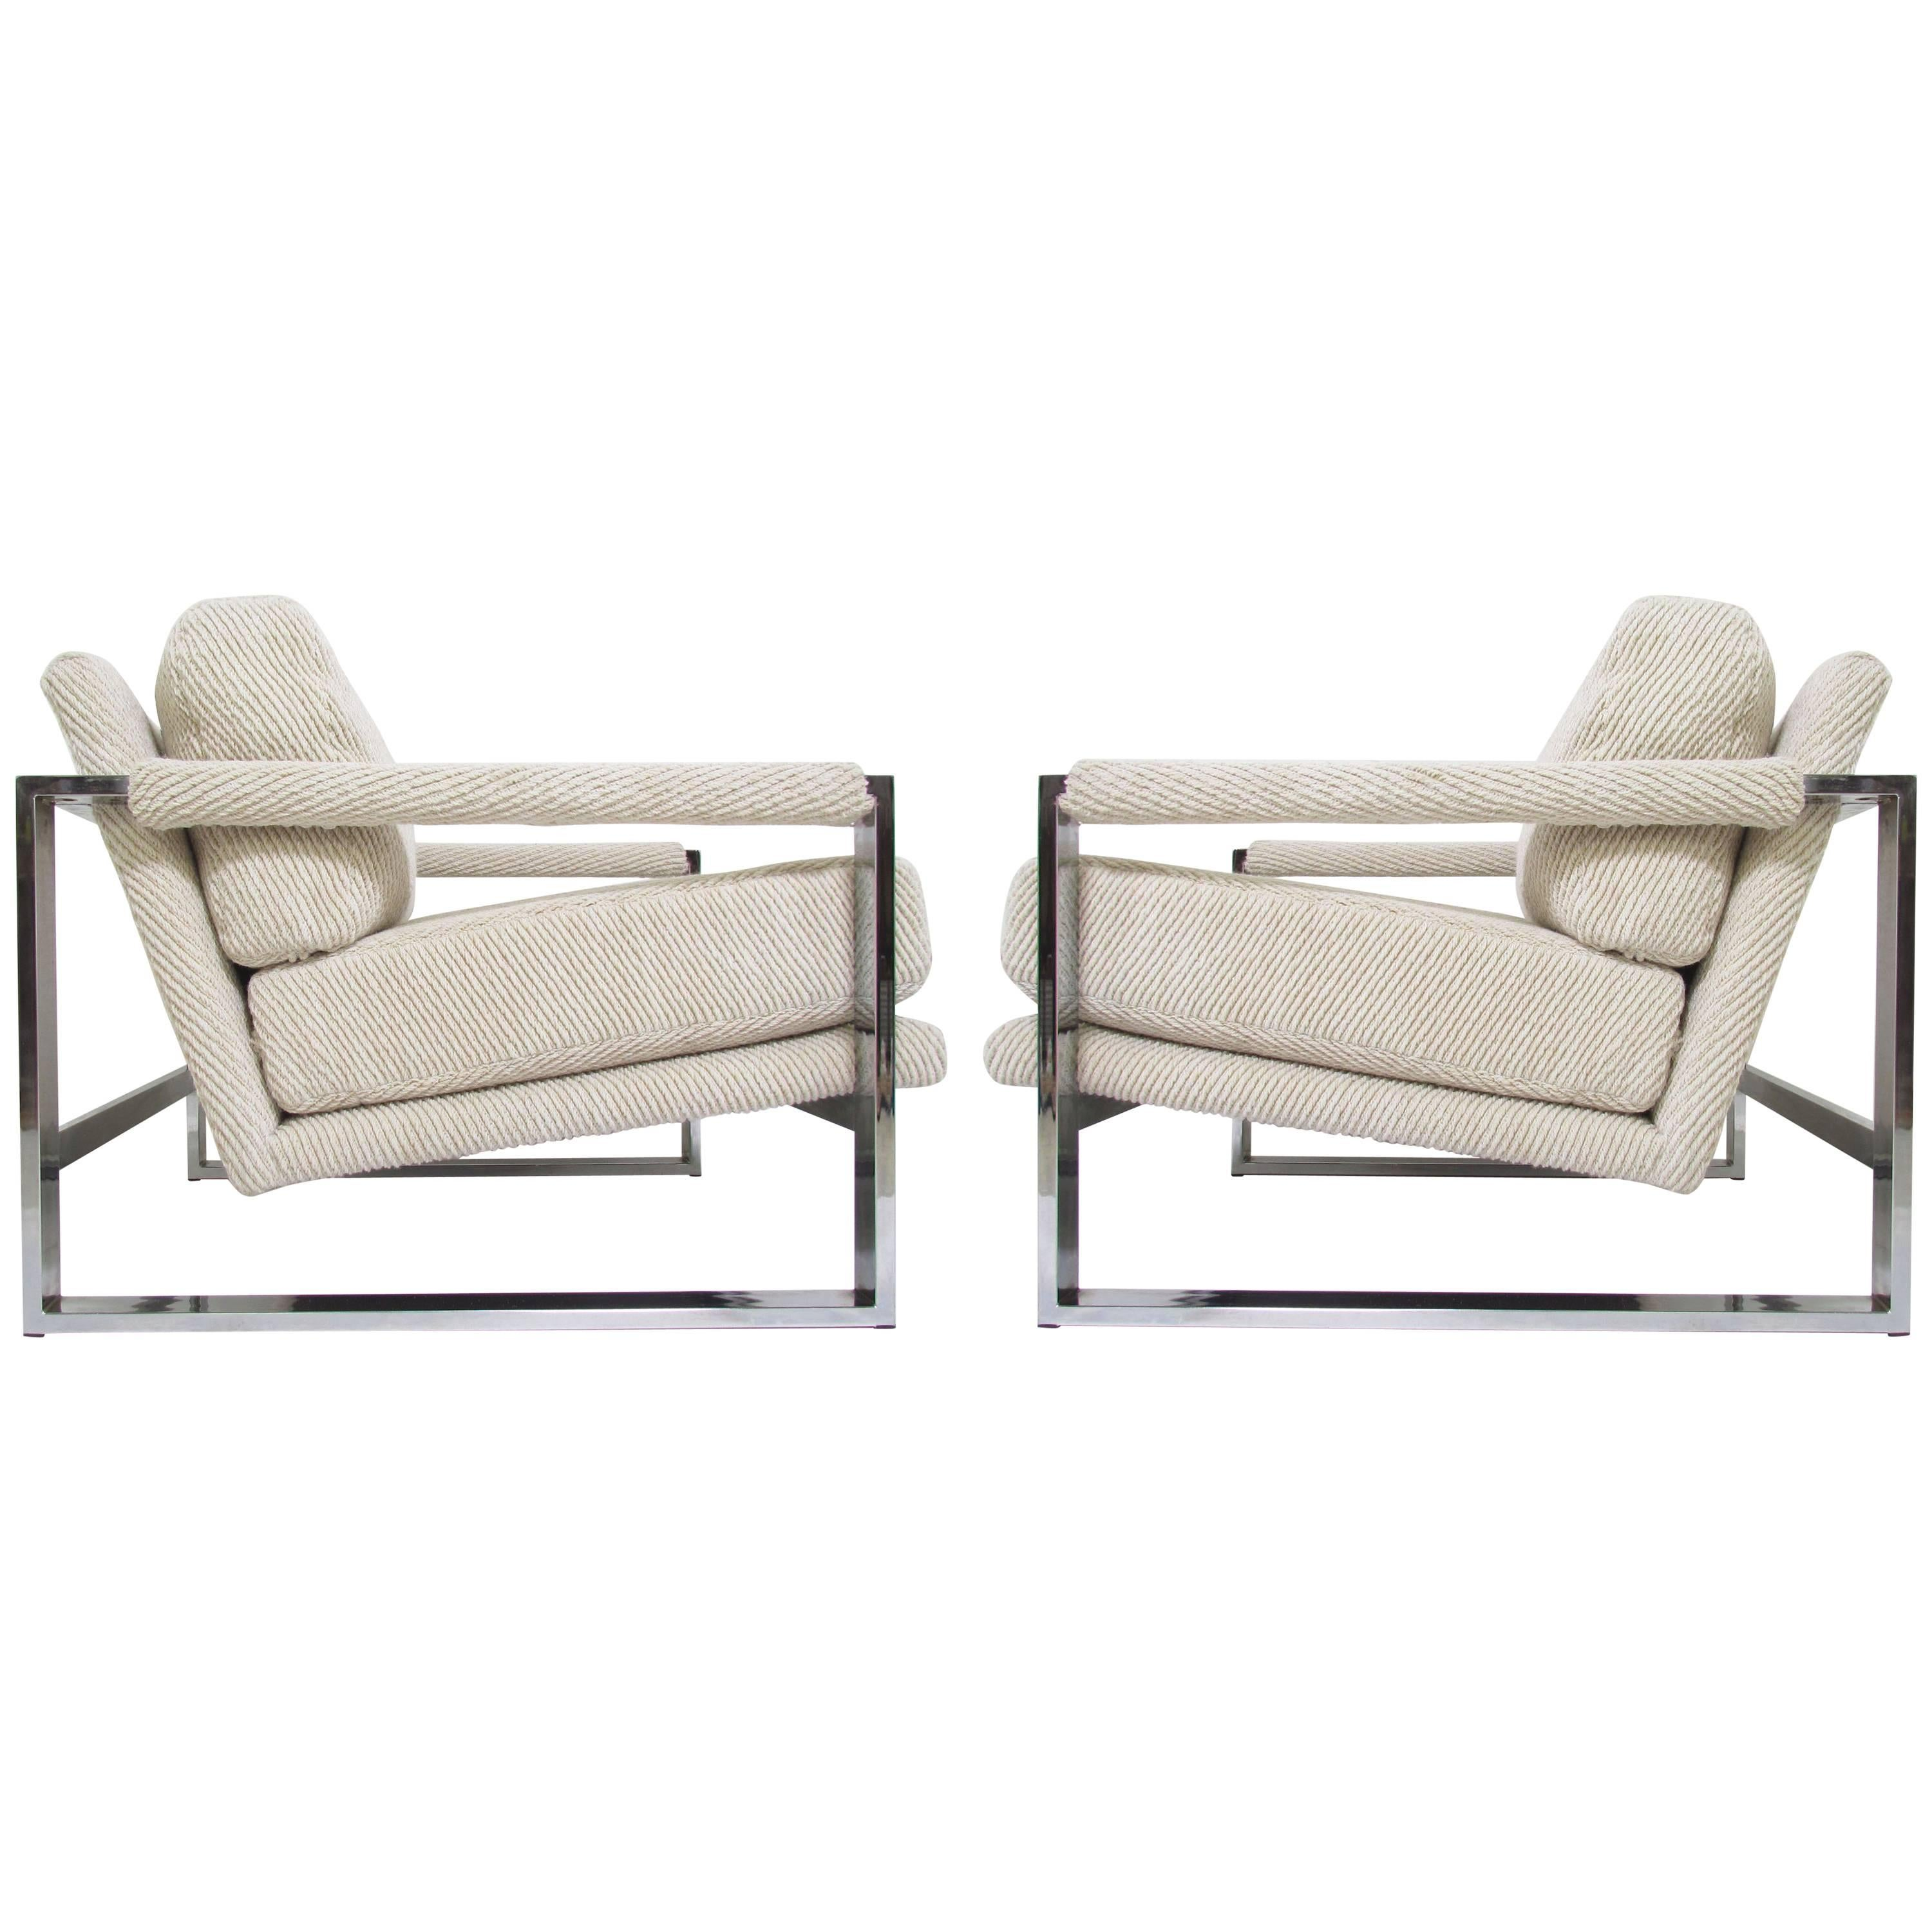 Pair Of Adrian Pearsall Cantilever Chrome Lounge Chairs For Comfort Designs  For Sale